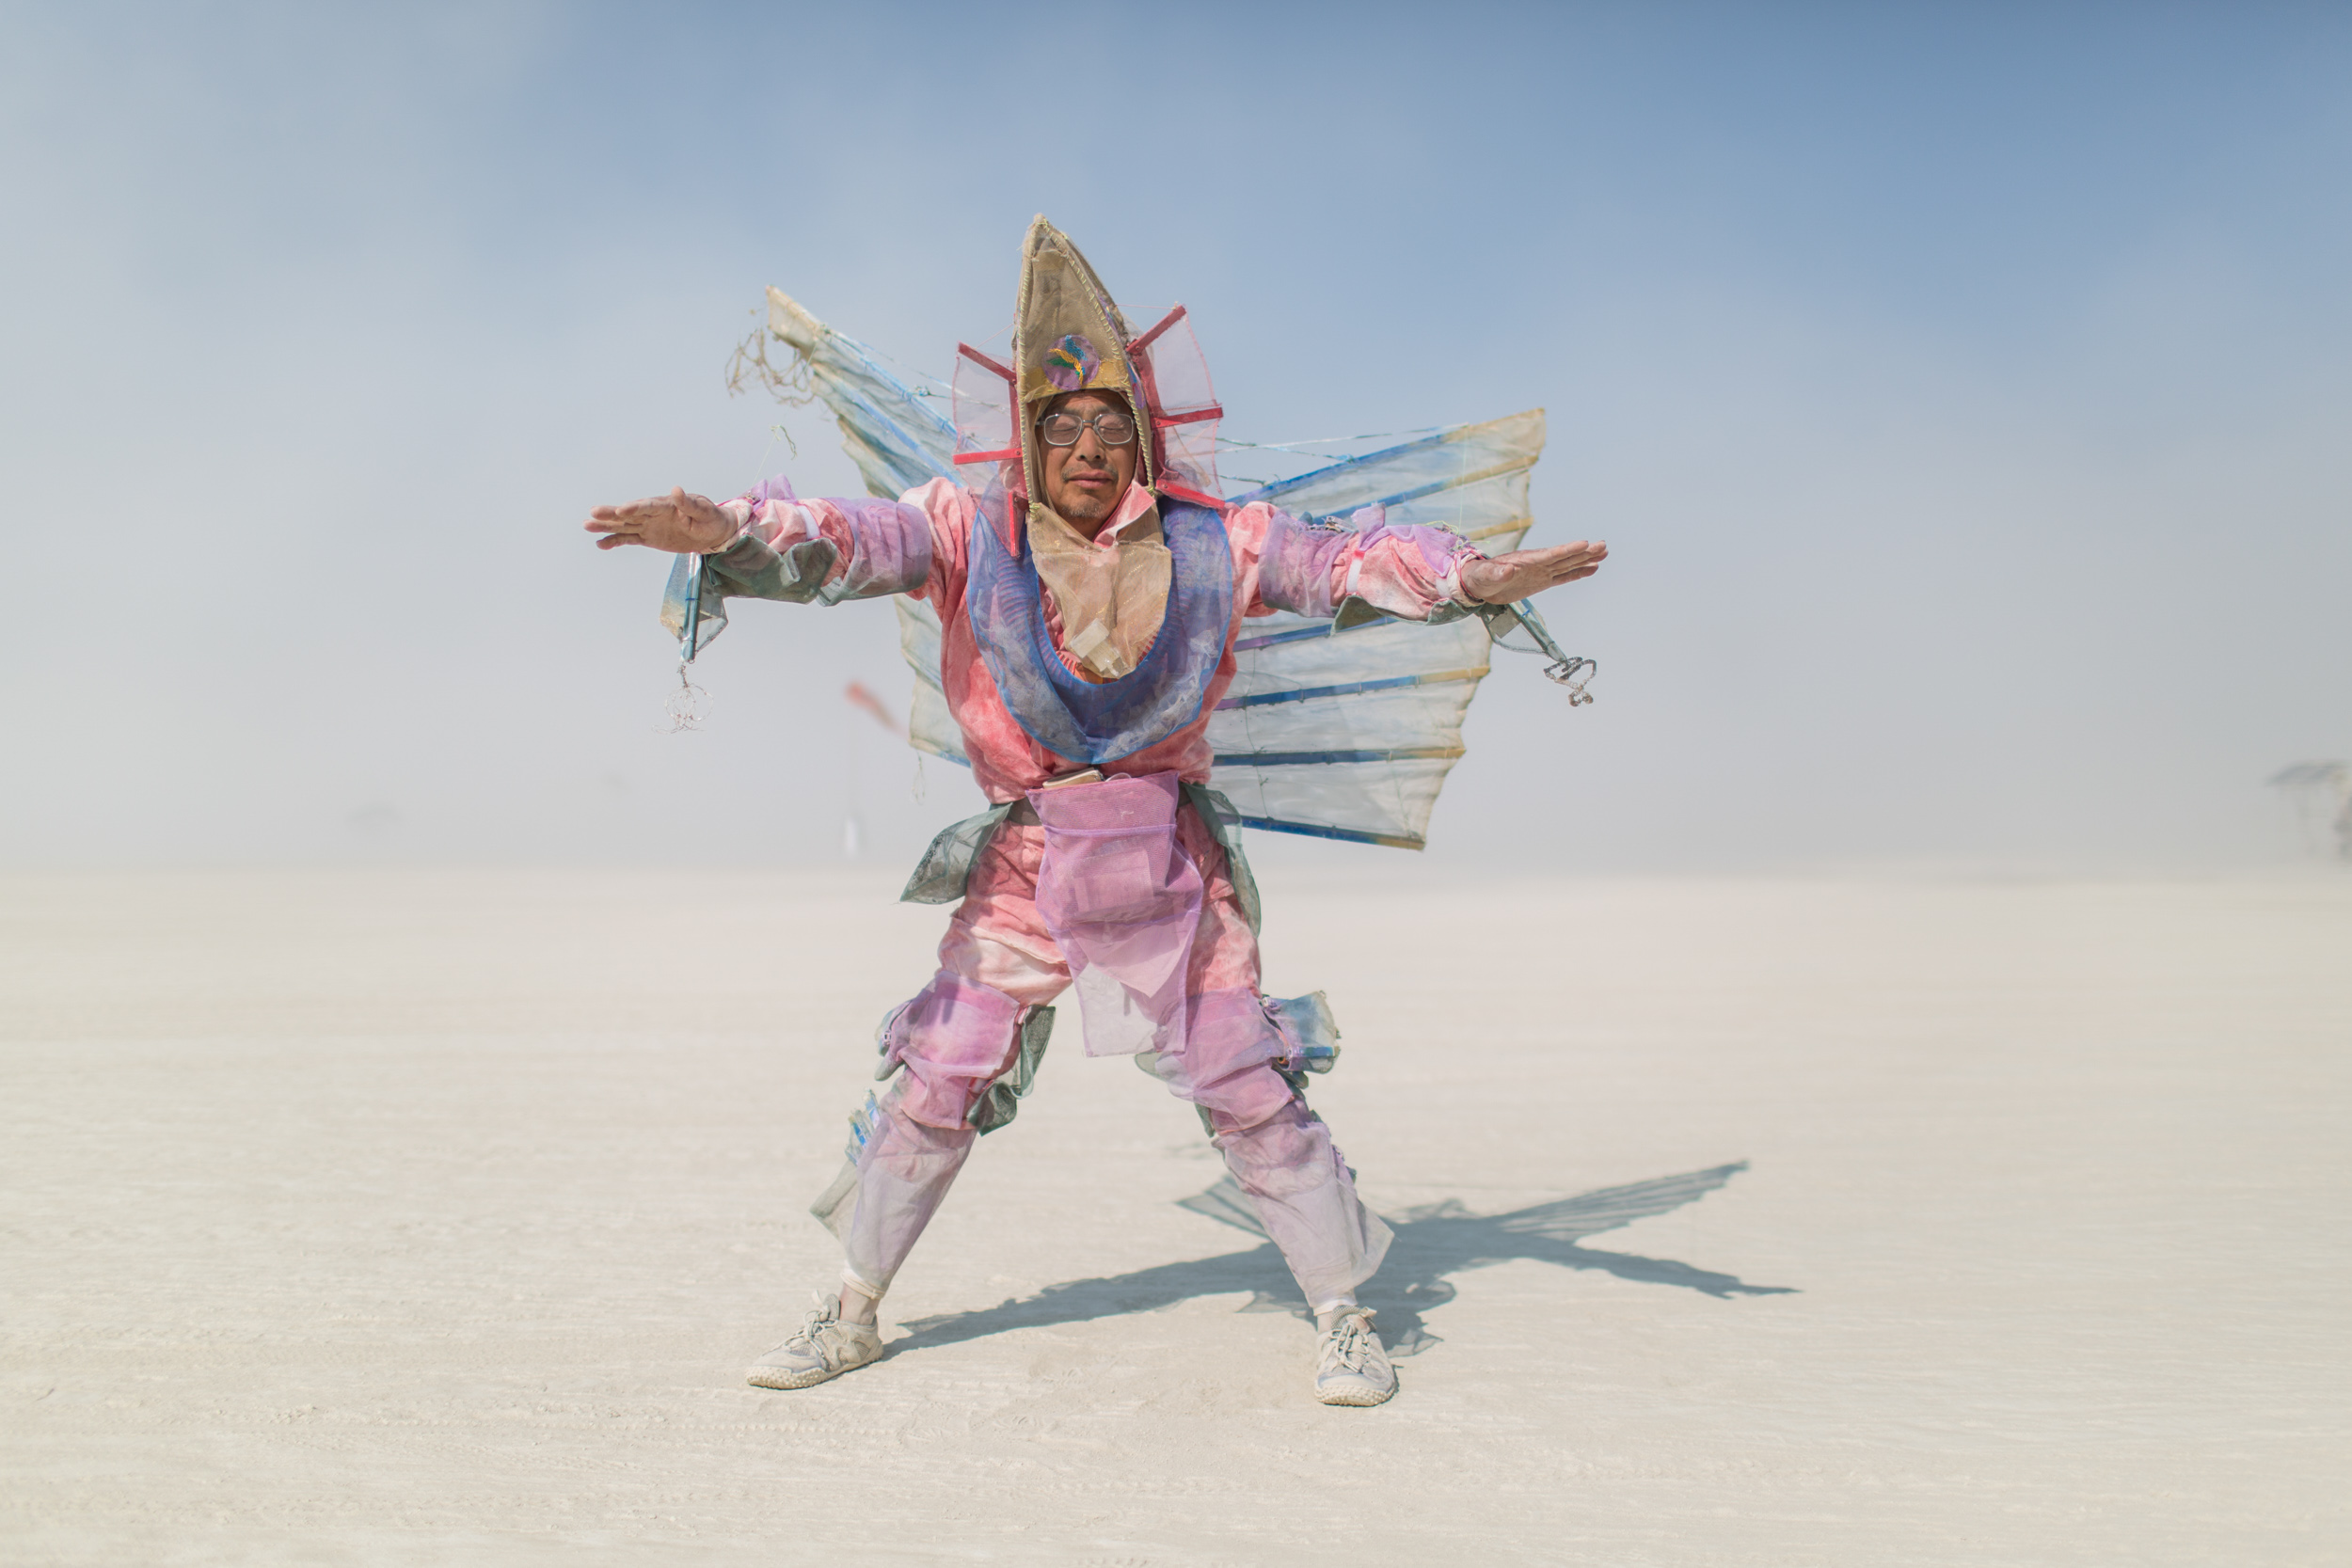 20160830_BurningMan16_7U6A7000